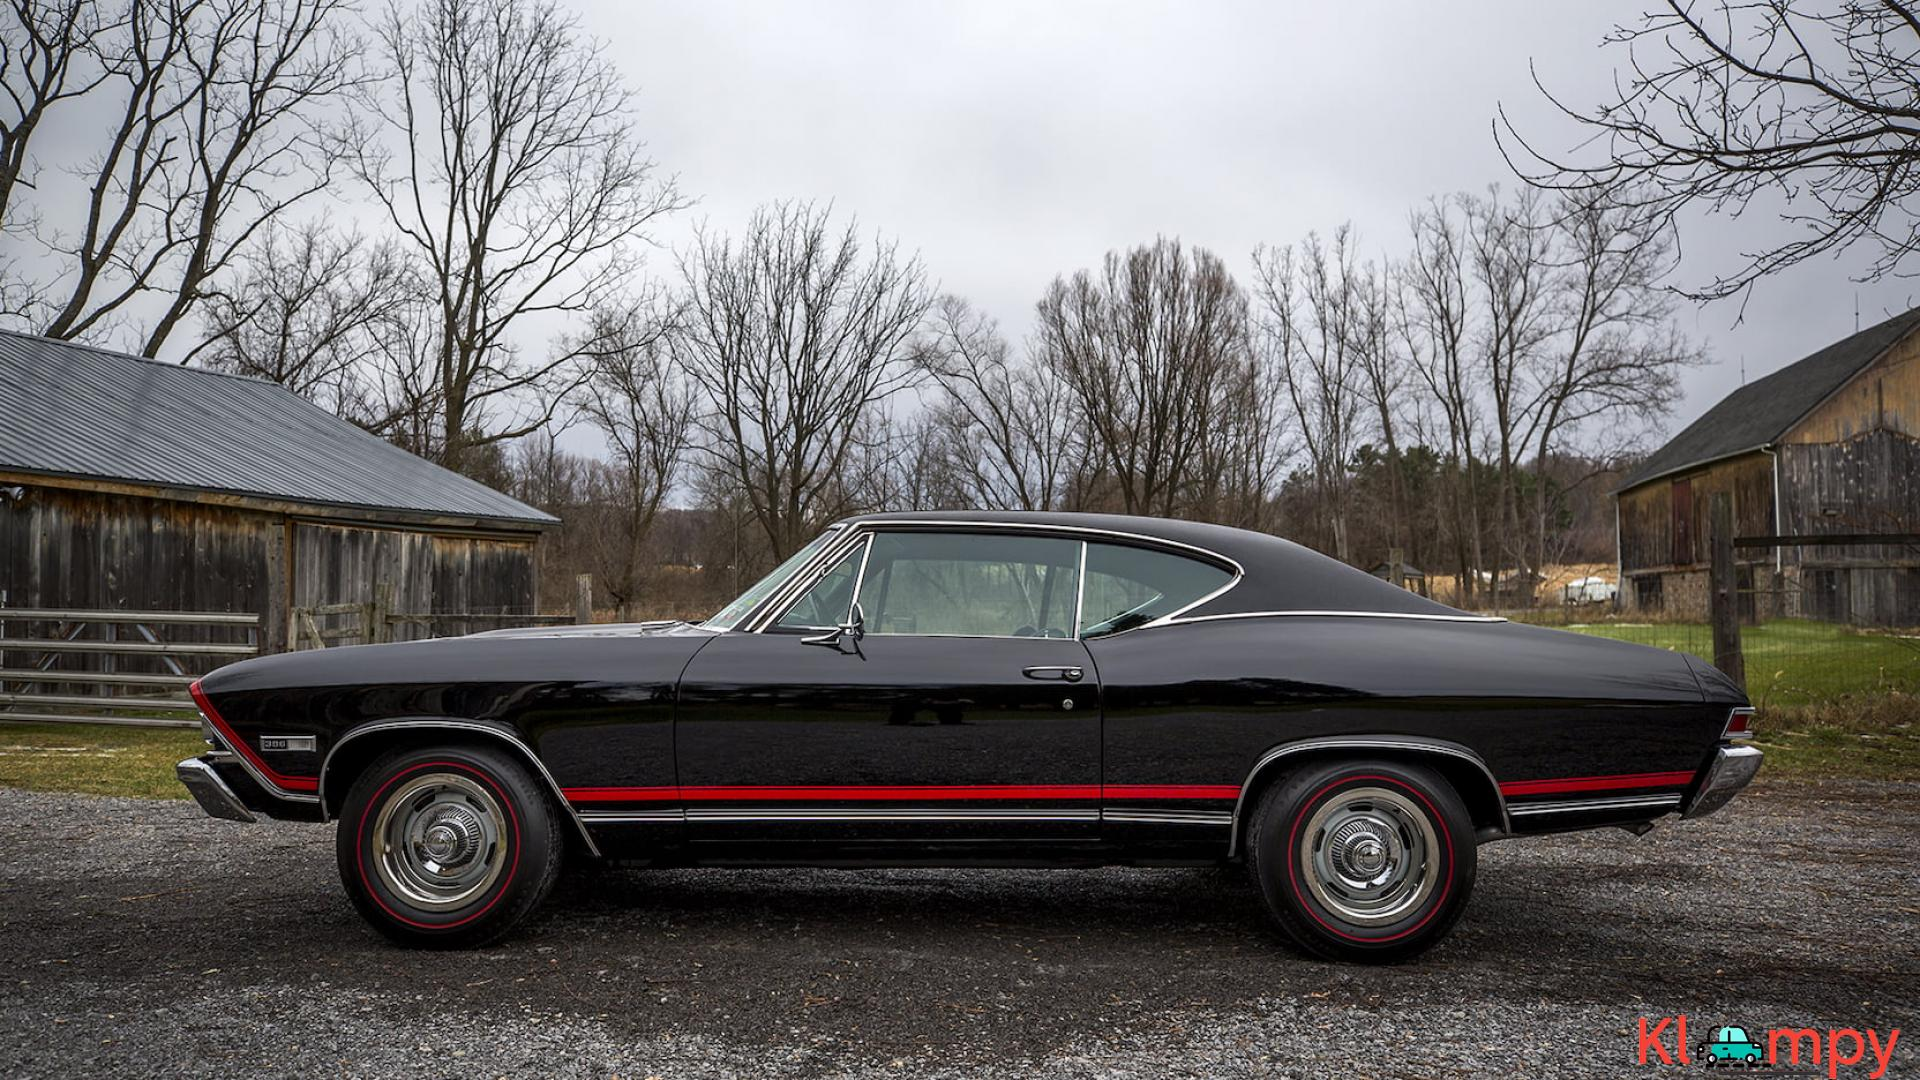 1968 Chevrolet Chevelle SS 396 Matching Numbers - 4/15